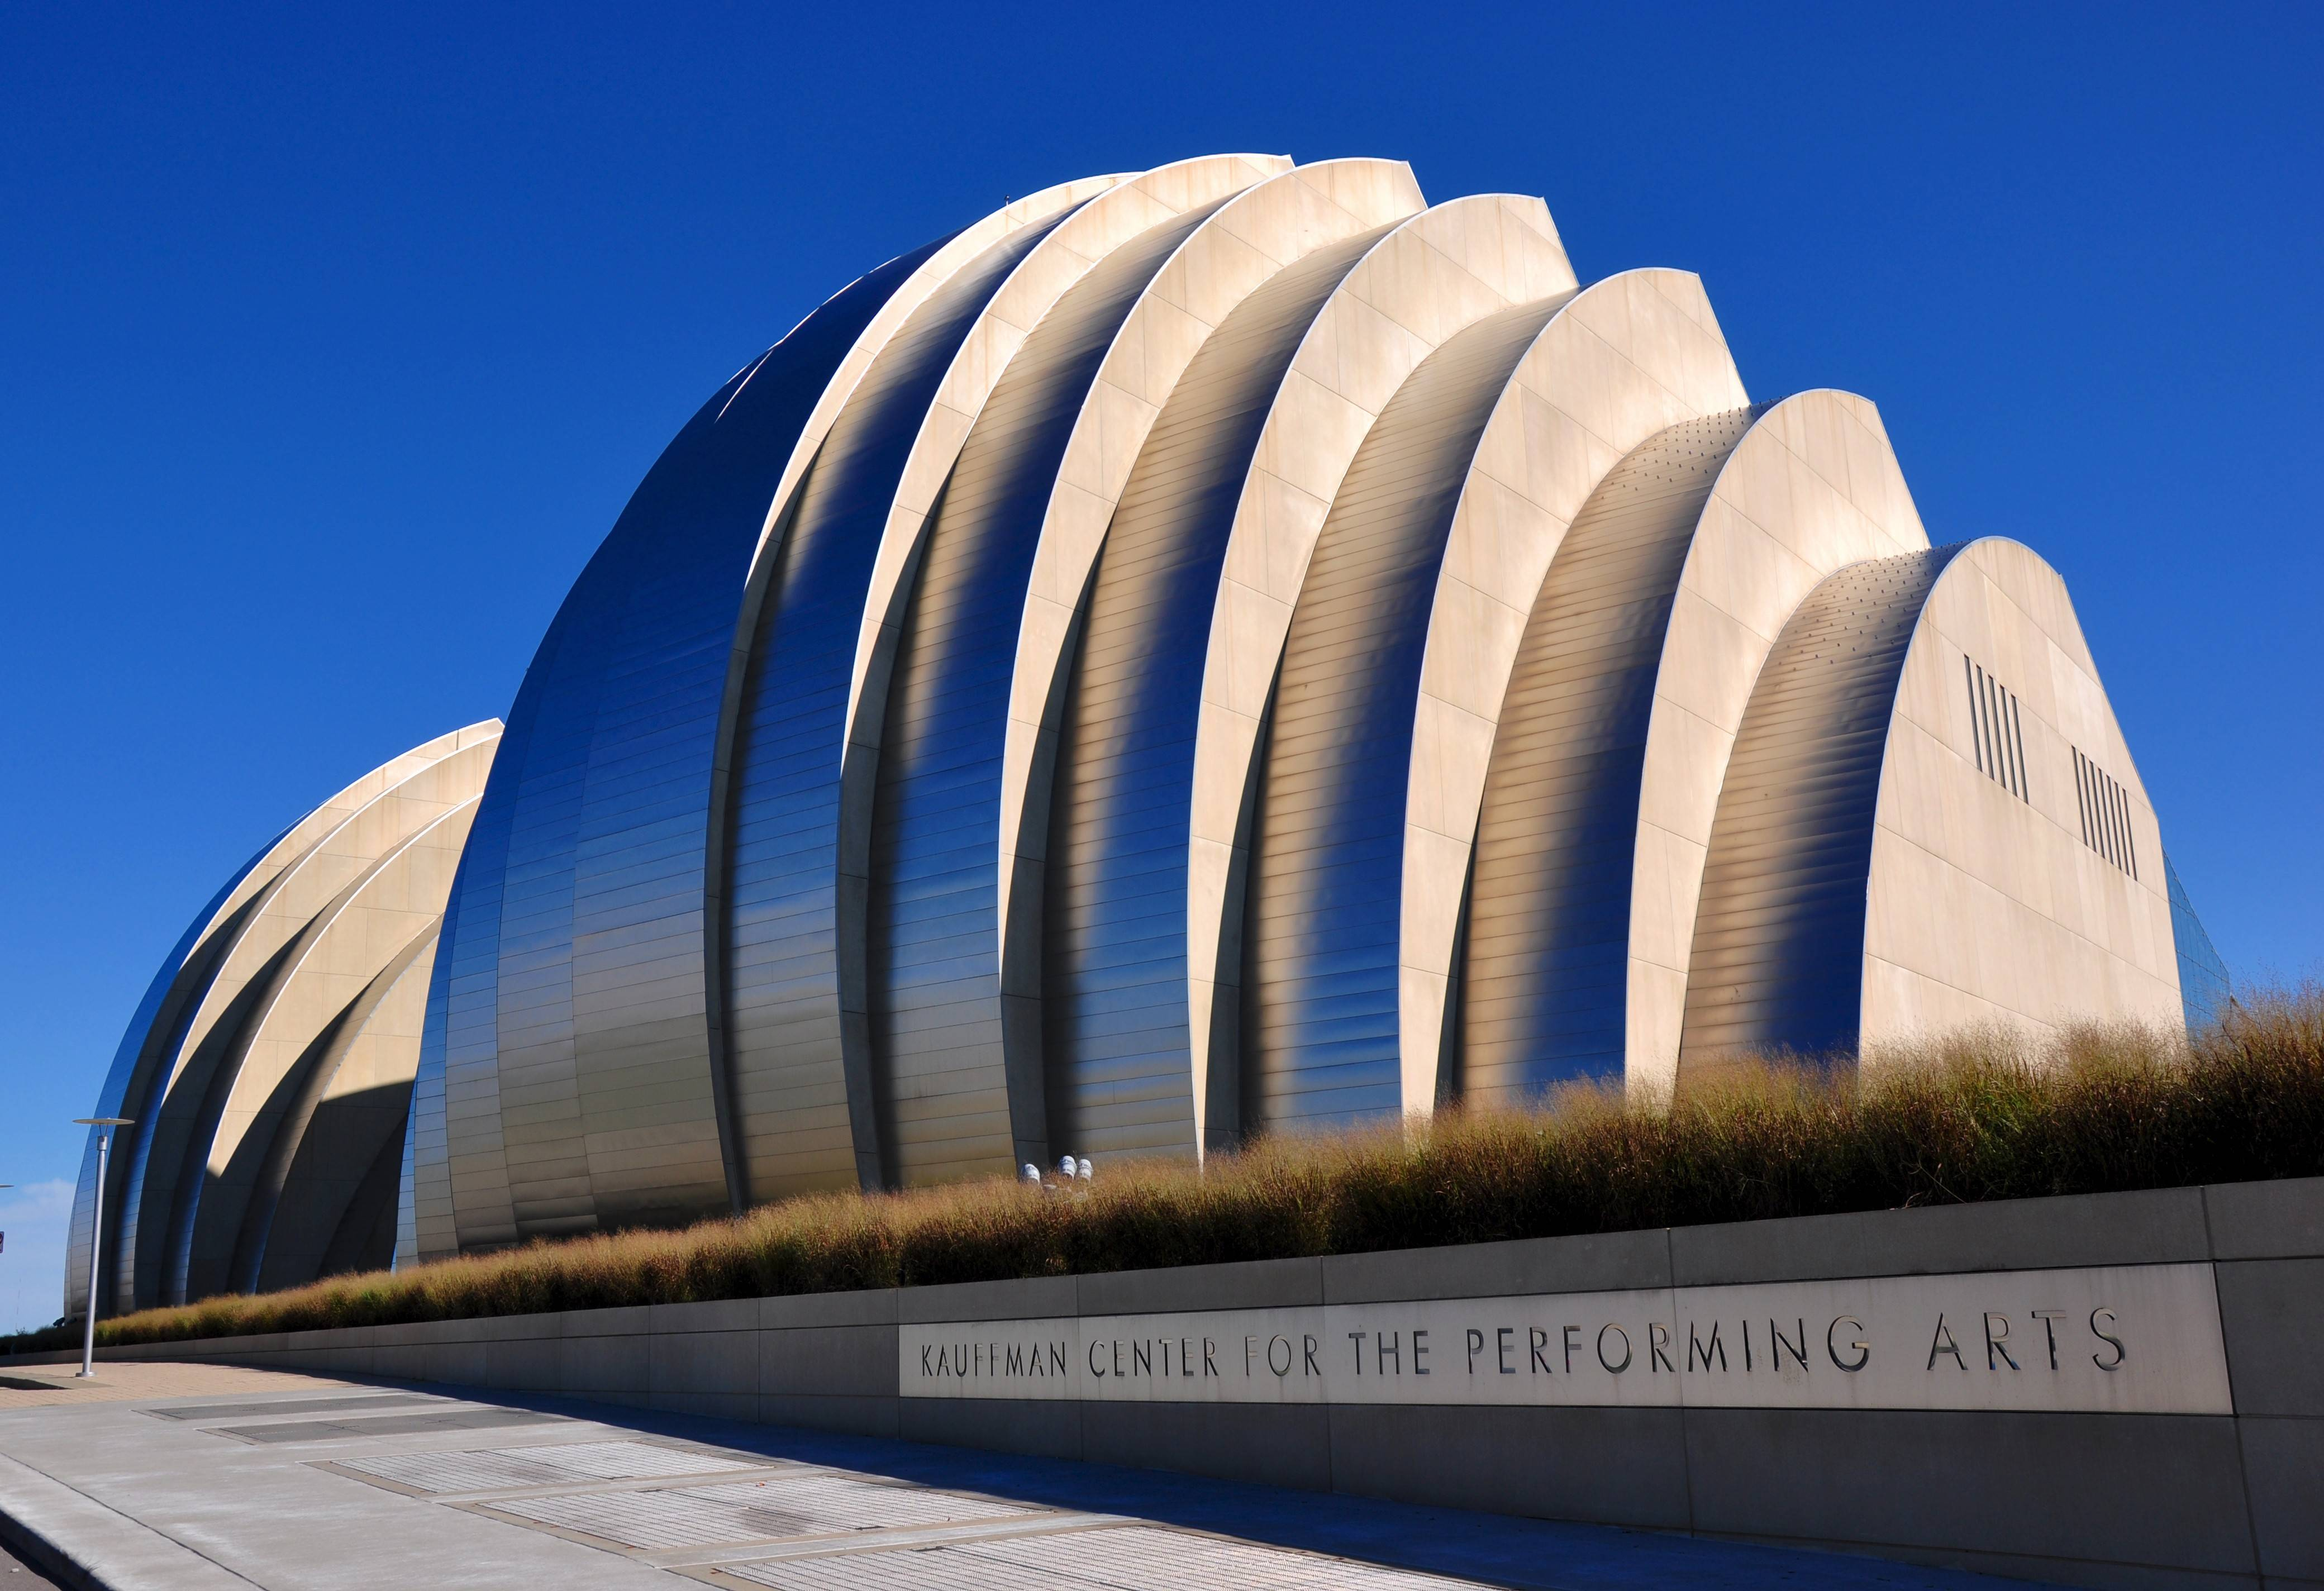 The Kauffman Center for the Performing Arts has been noted for its striking architecture. It's become an icon for Kansas City since its opening in 2011.